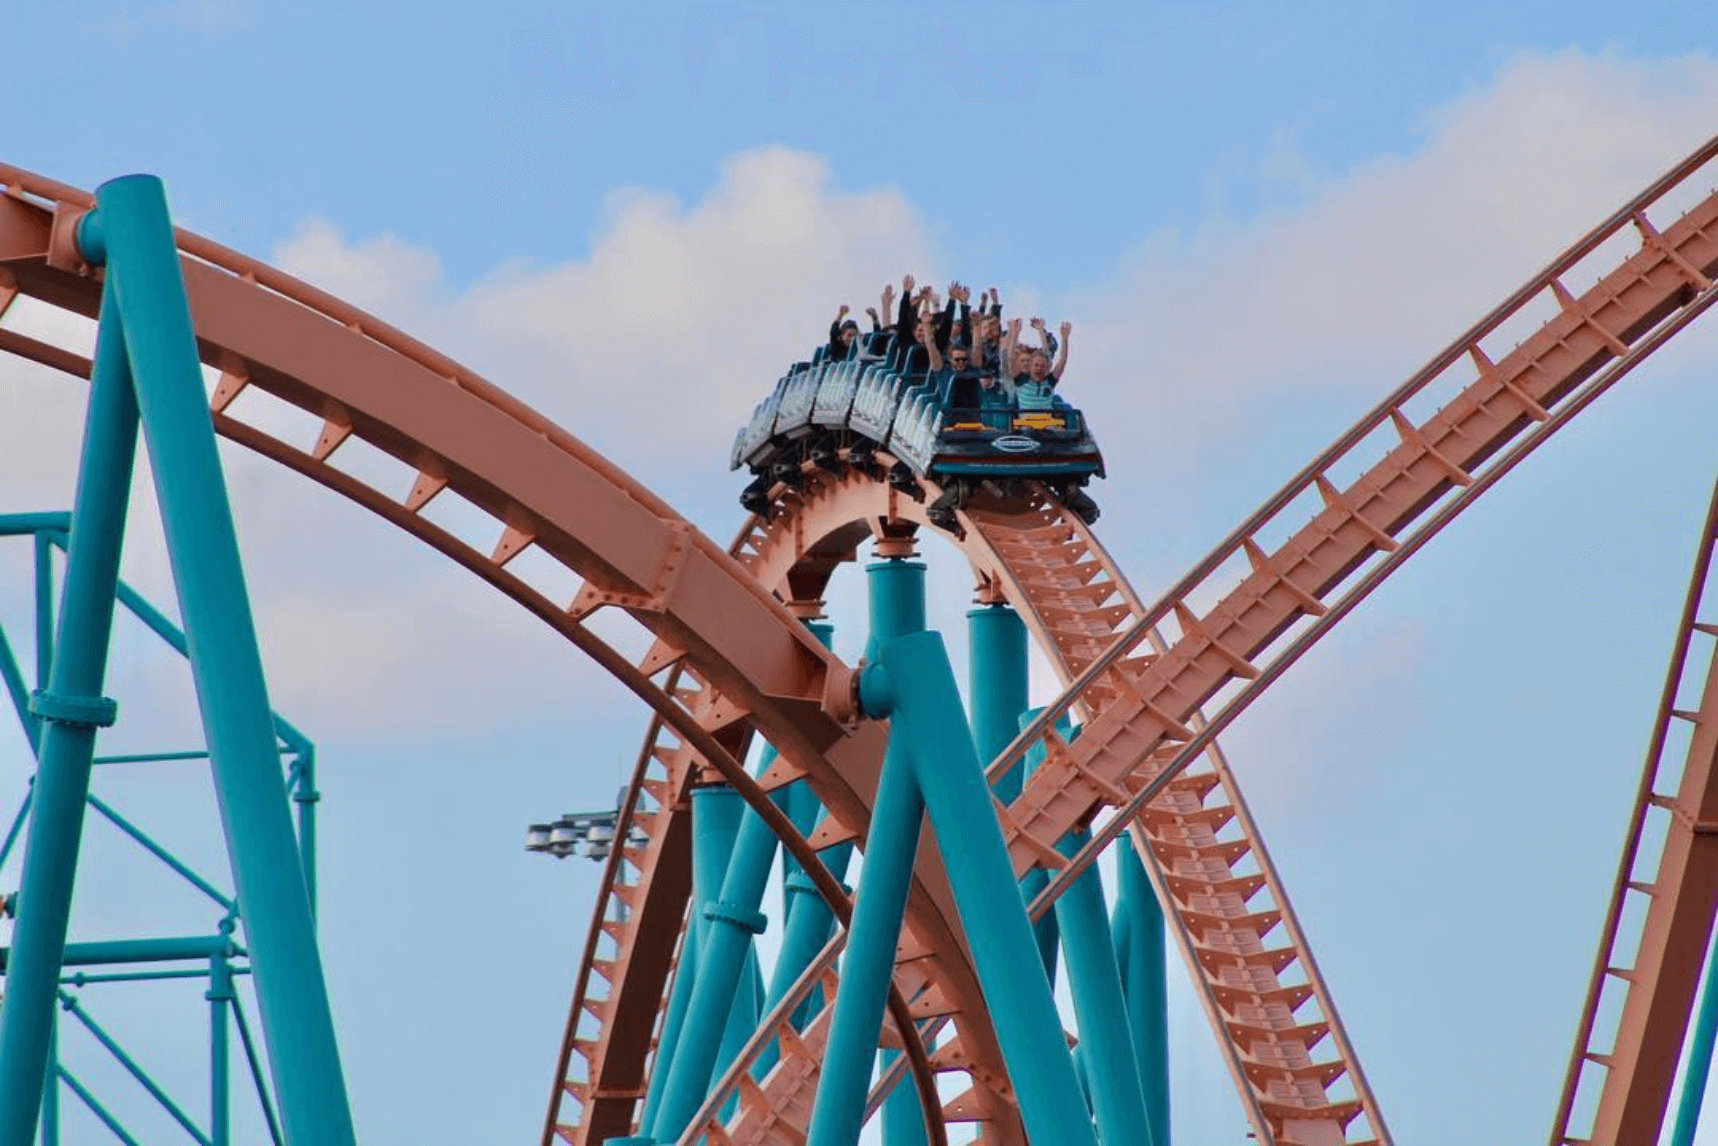 5 Little Known Facts About Six Flags Over Texas Visitdfw Six Flags Over Texas Las Vegas Hotels Dallas Activities